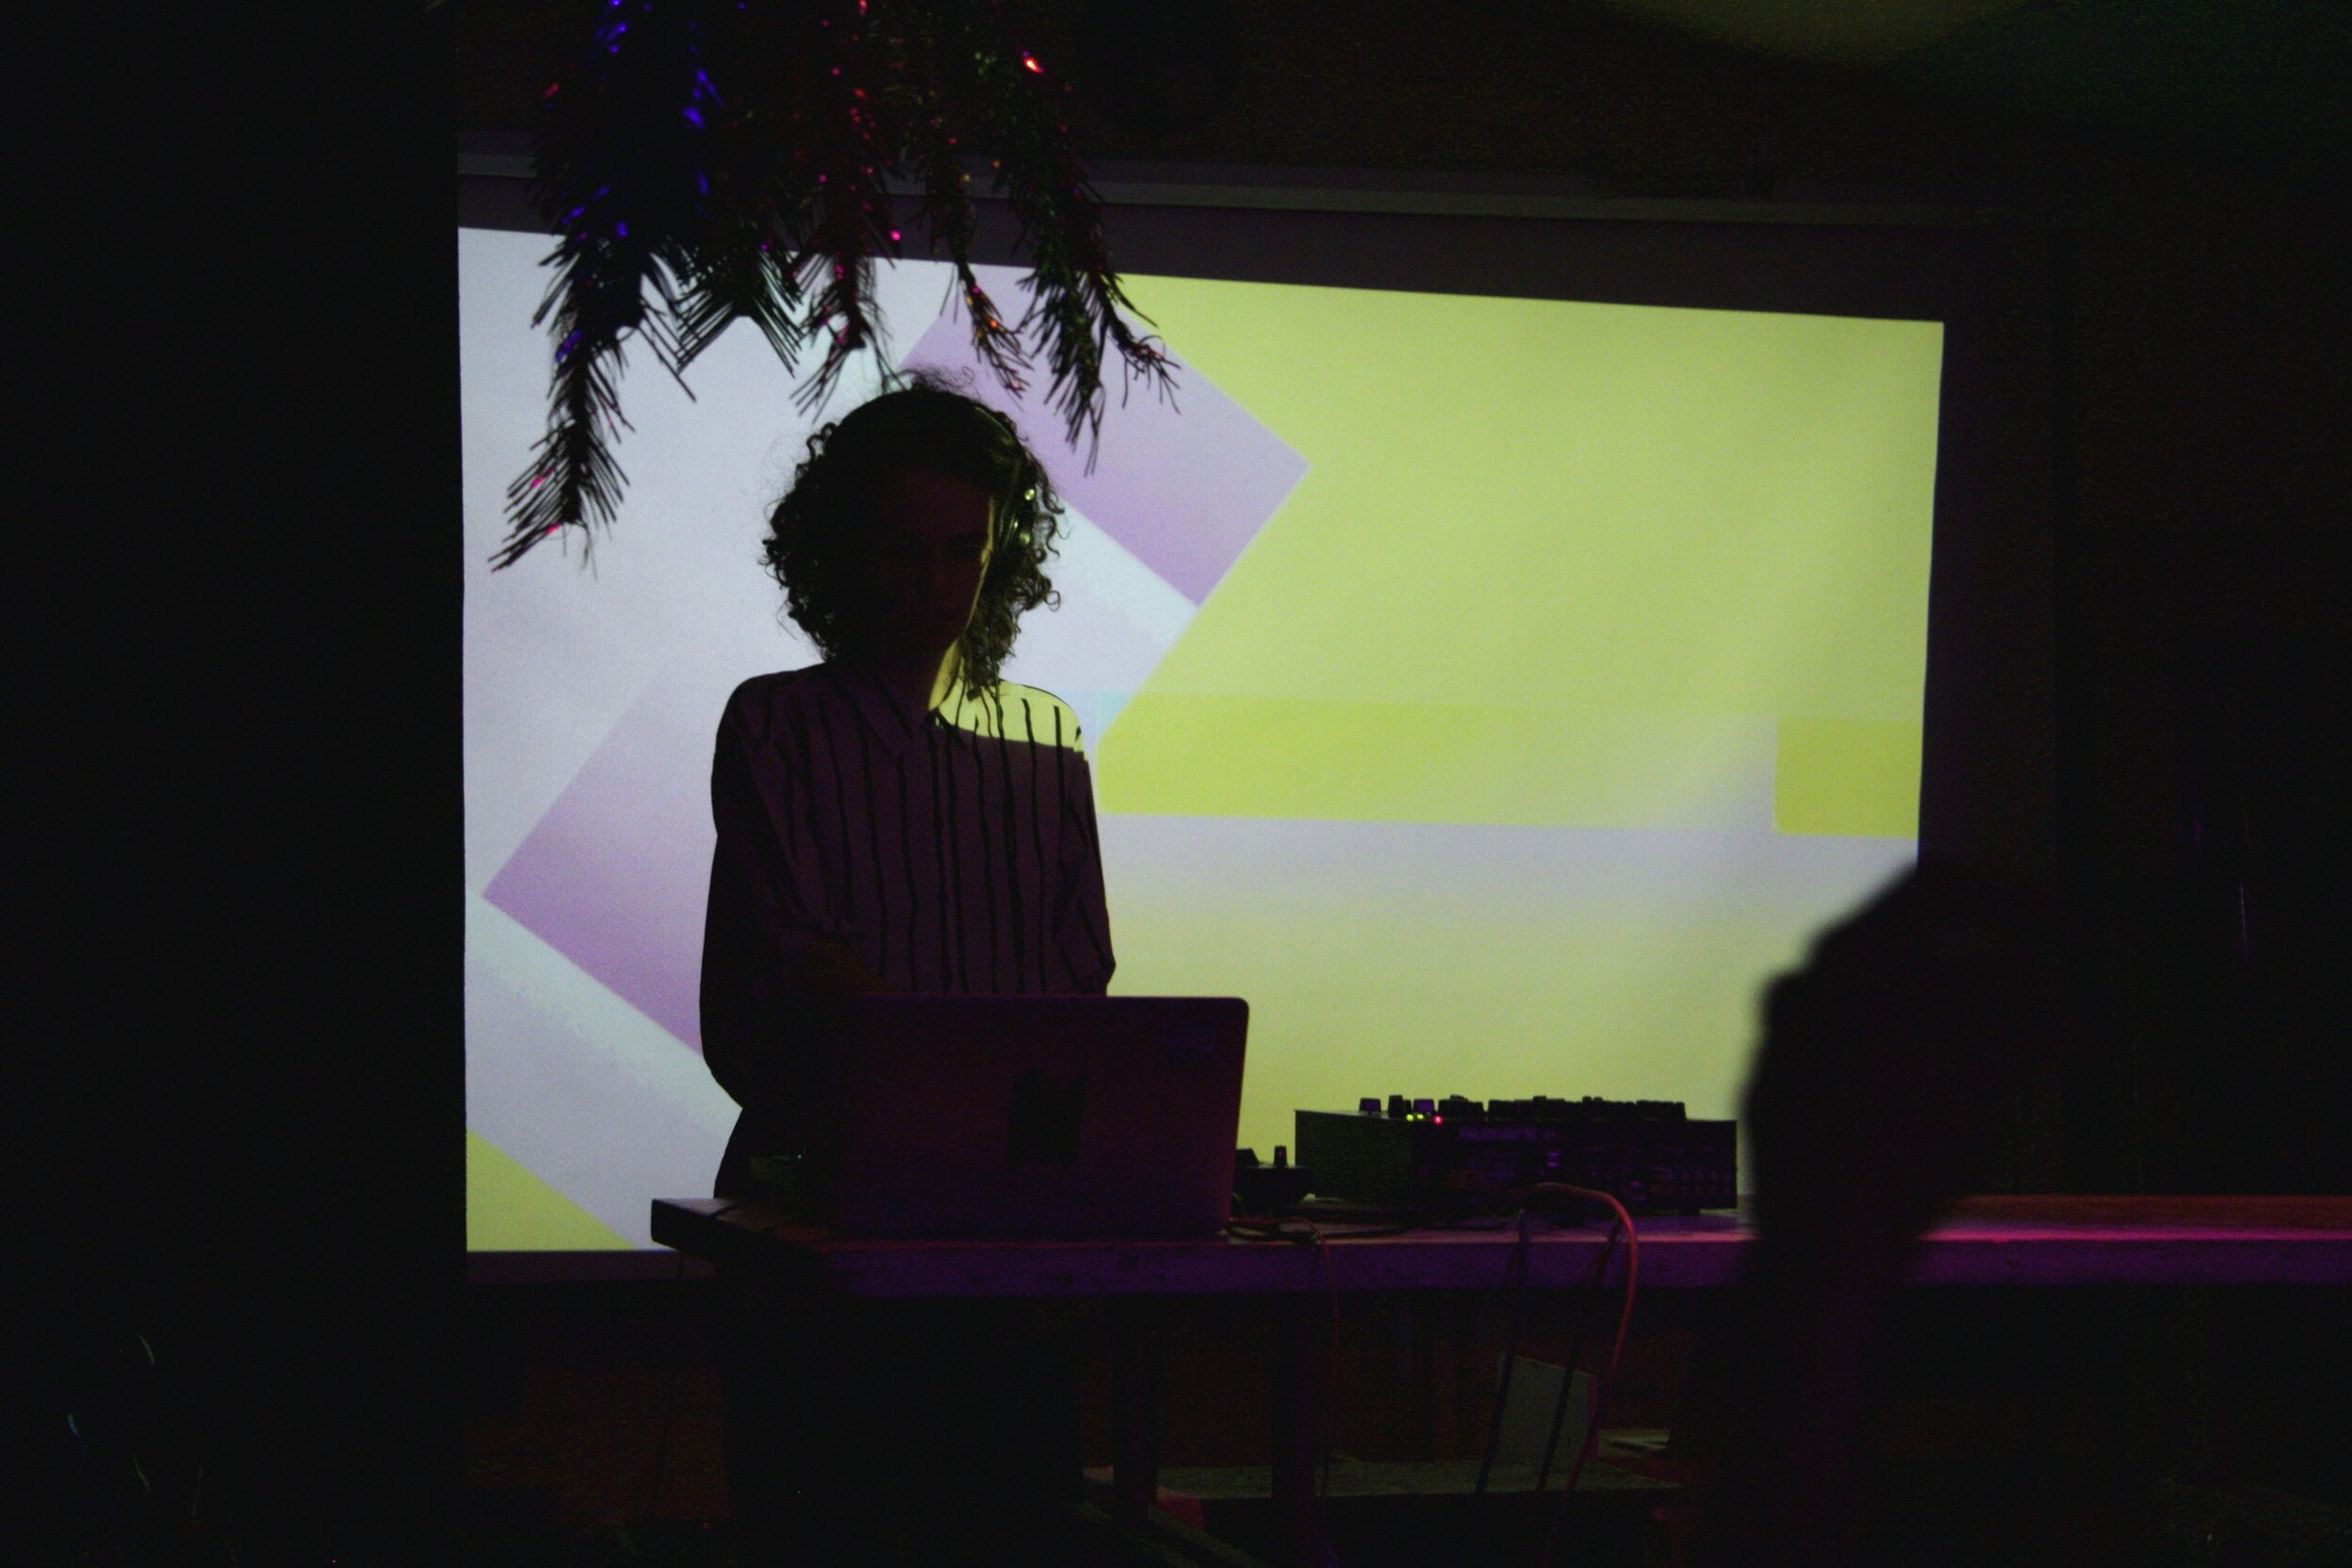 Photo of some visuals that I provided for the  MURMURS Fundraiser  on September 21 at  Raumerweiterungshalle  in Berlin.